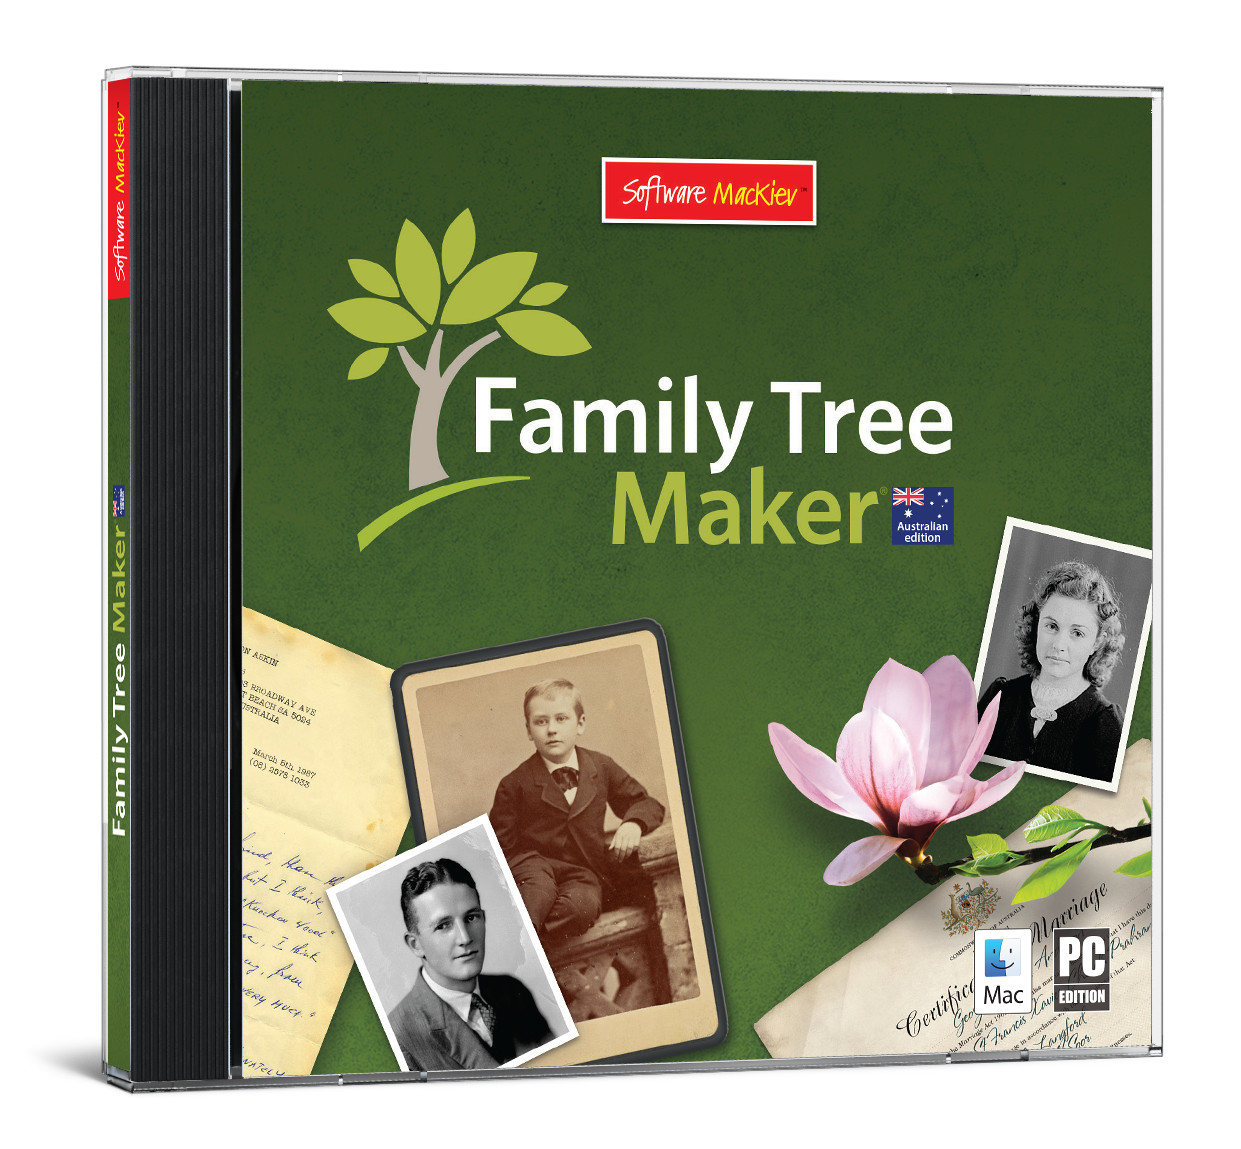 Family Tree Maker 2014.1 Arrives in Australia